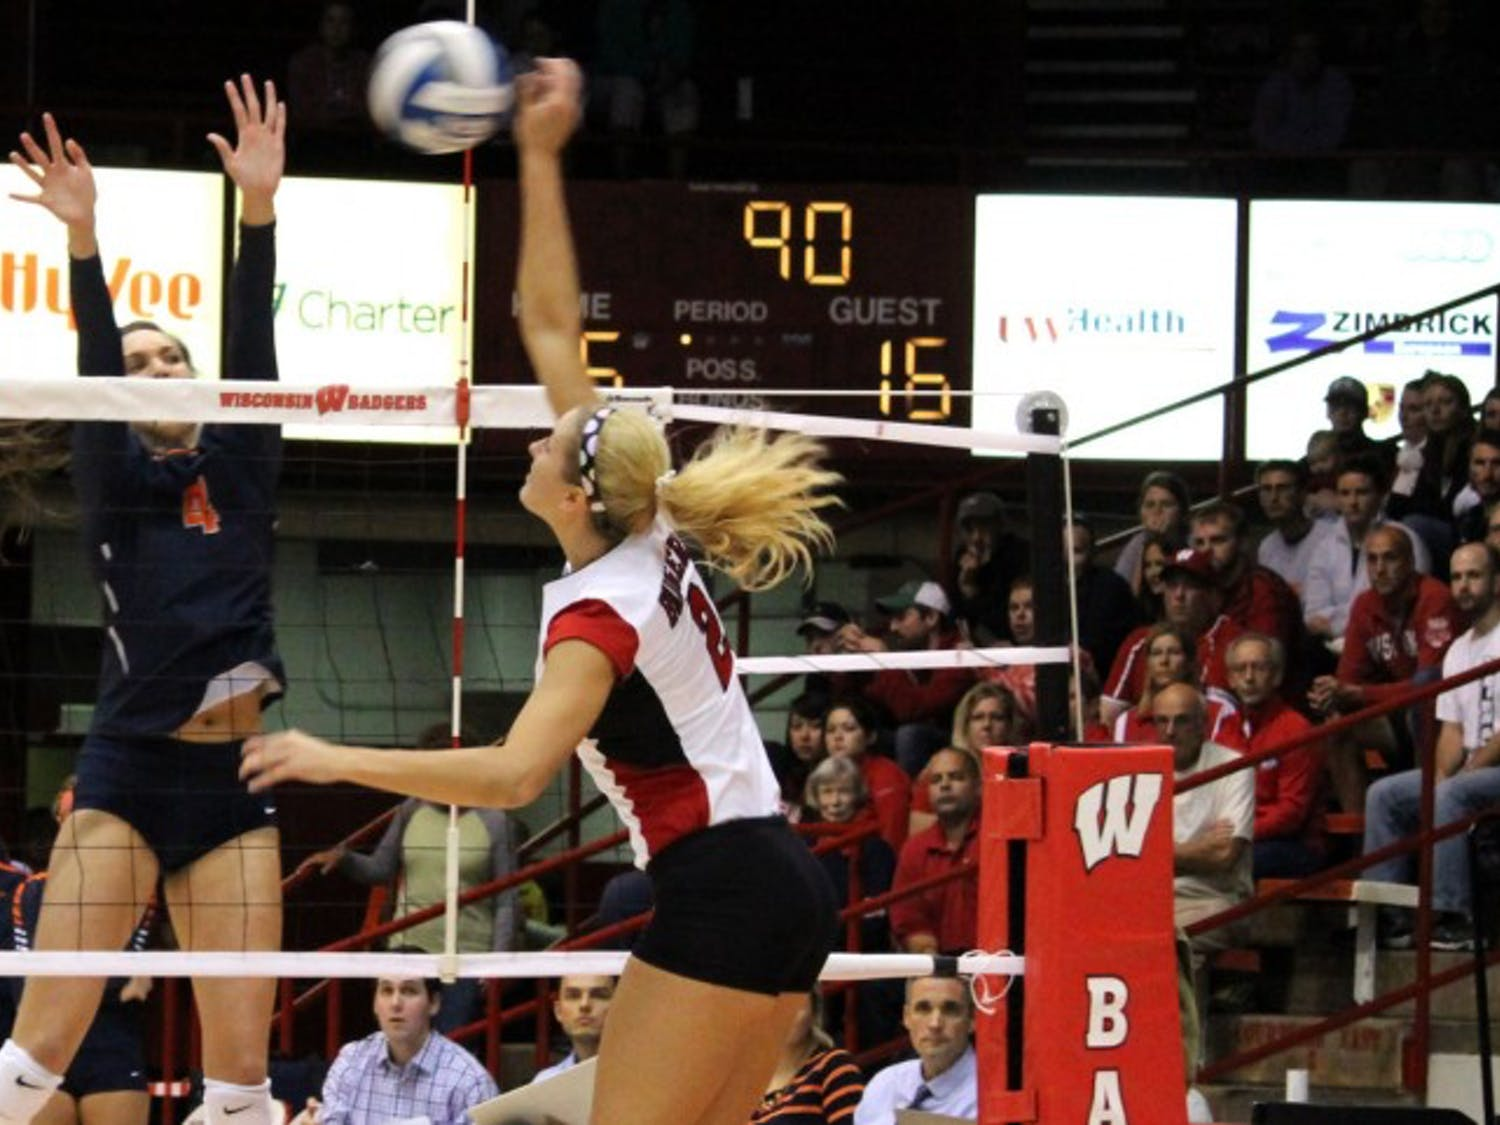 Redshirt seniorRomana Kriskova has come up big for the Badgers in their last two matches.